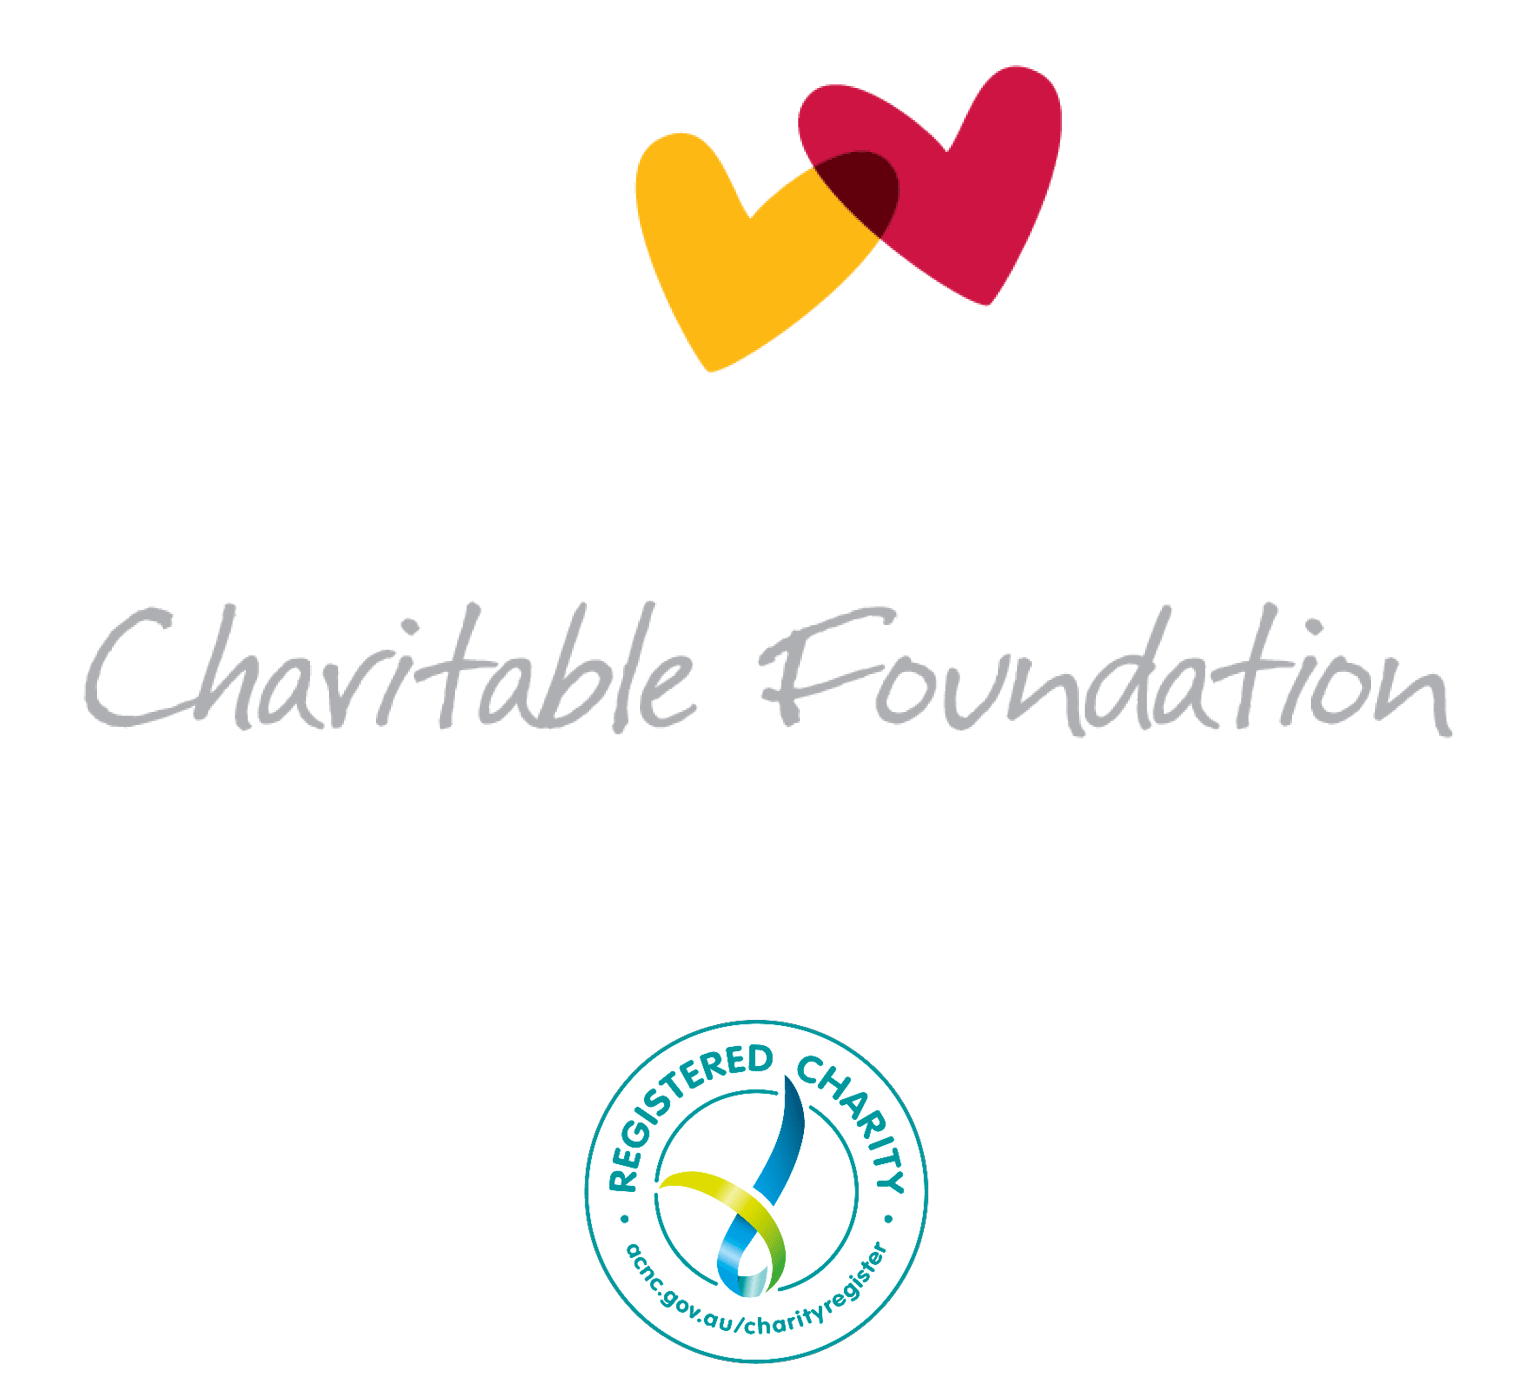 Heritage Bank Charitable Foundation ACNC Registered Charity